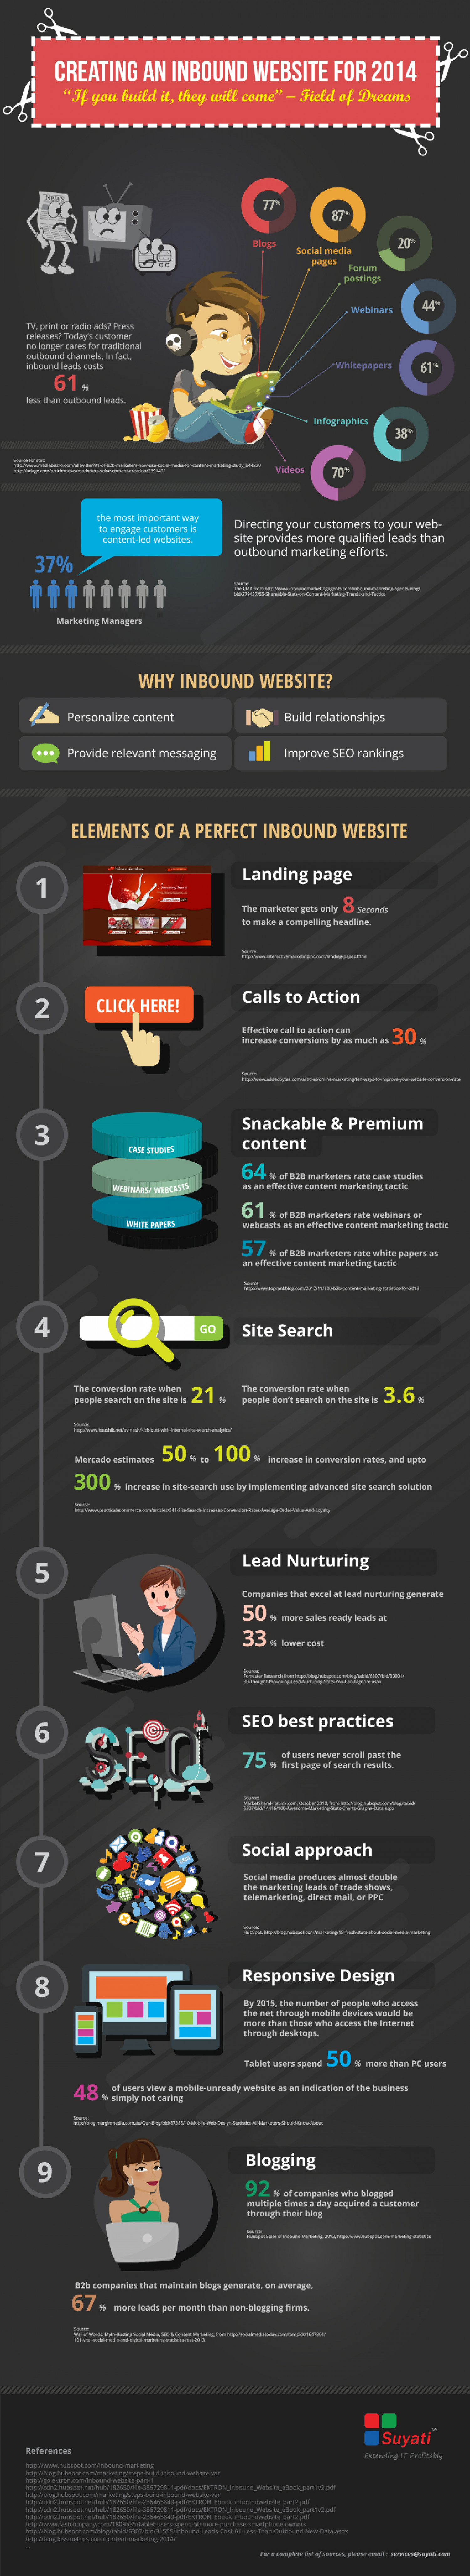 Creating An Inbound Website For 2014 Infographic